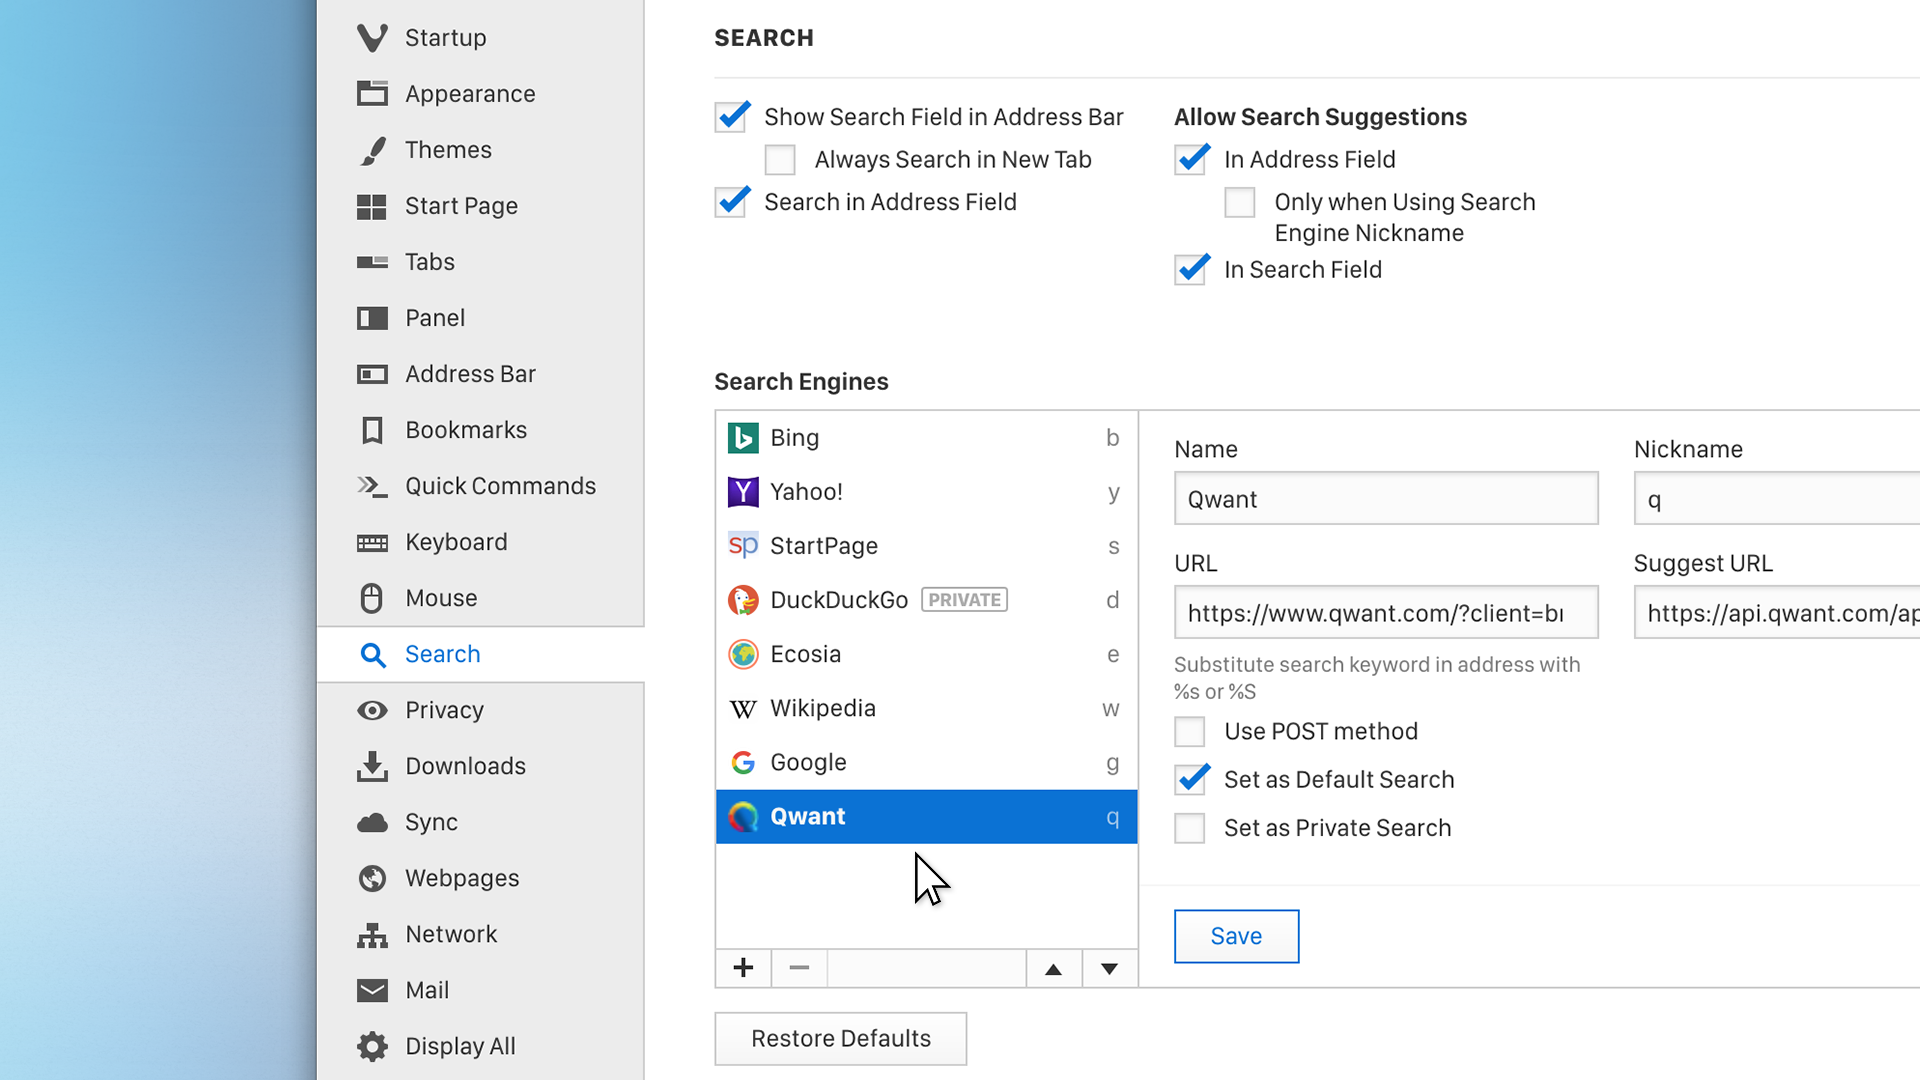 Search settings in the Vivaldi browser include a number of privacy-friendly options like DuckDuckGo, Qwant and StartPage.